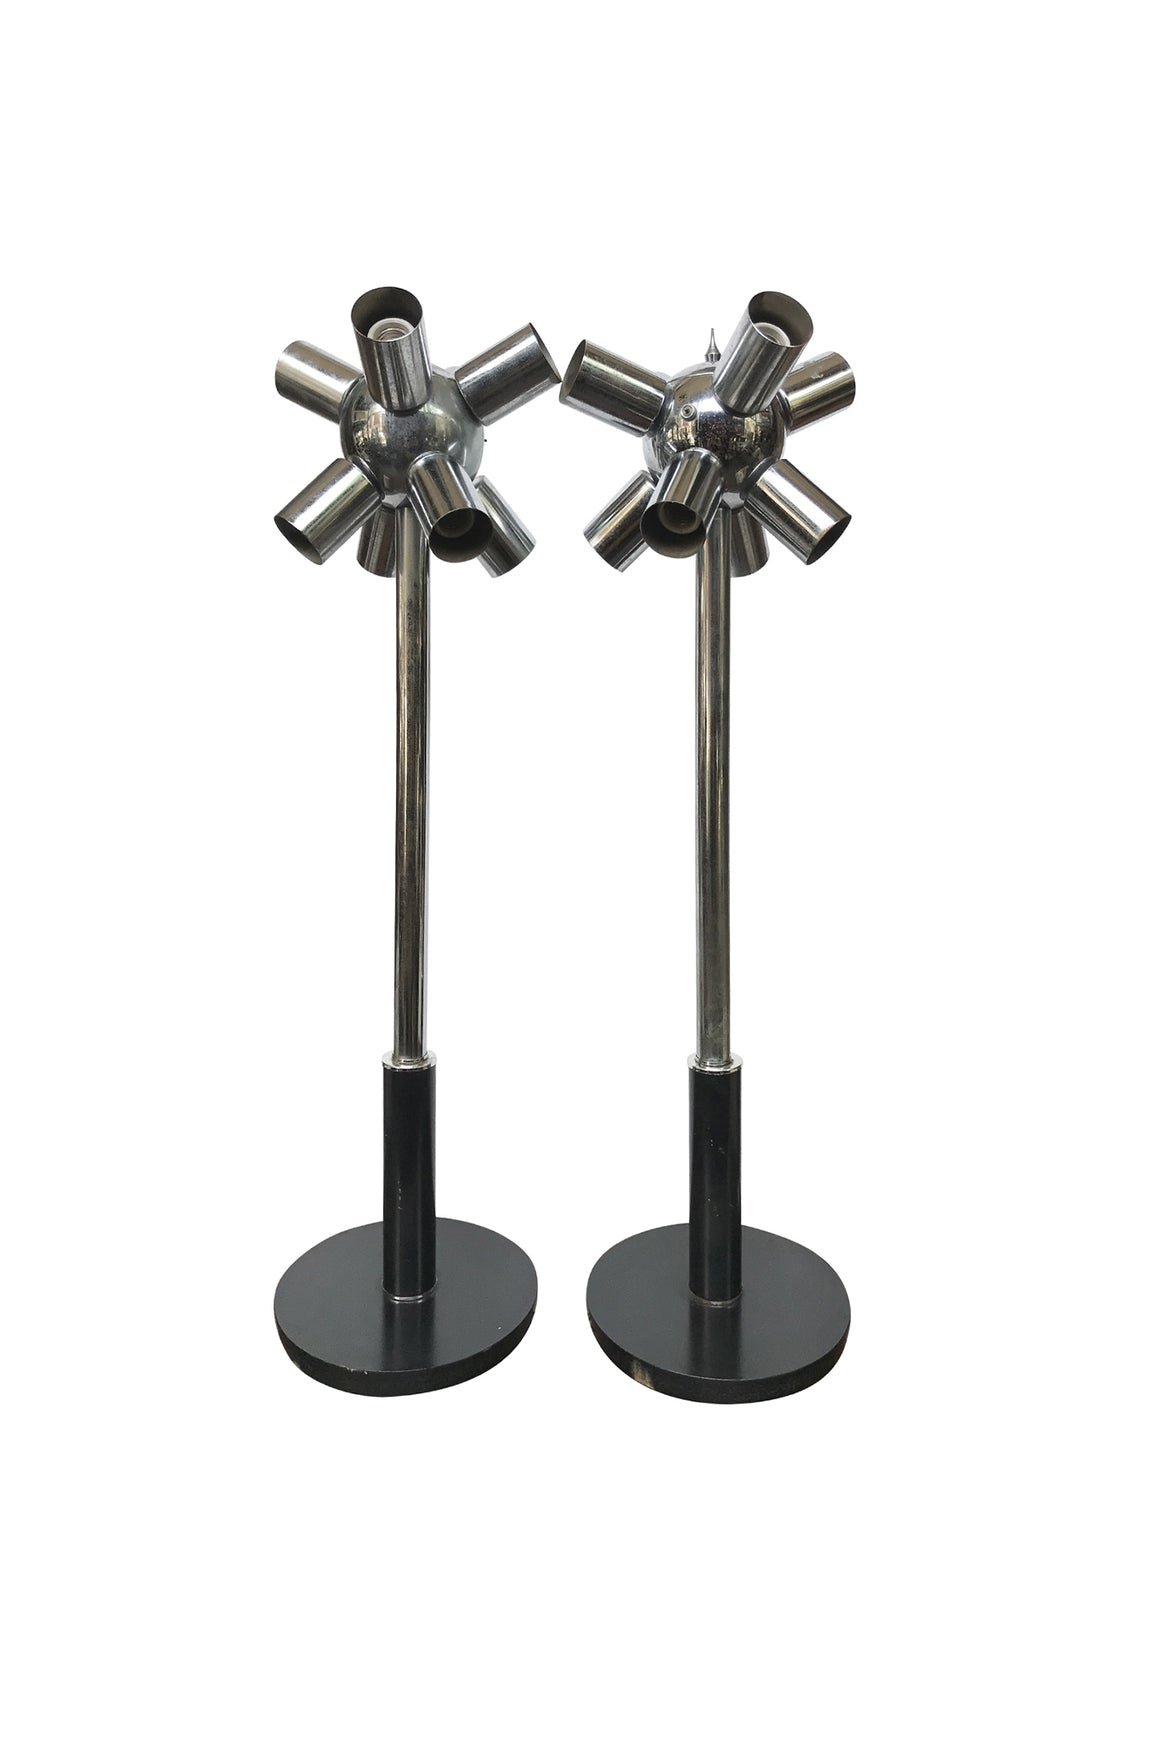 Pair of 1970s Space Age Style Chrome Table Lamps